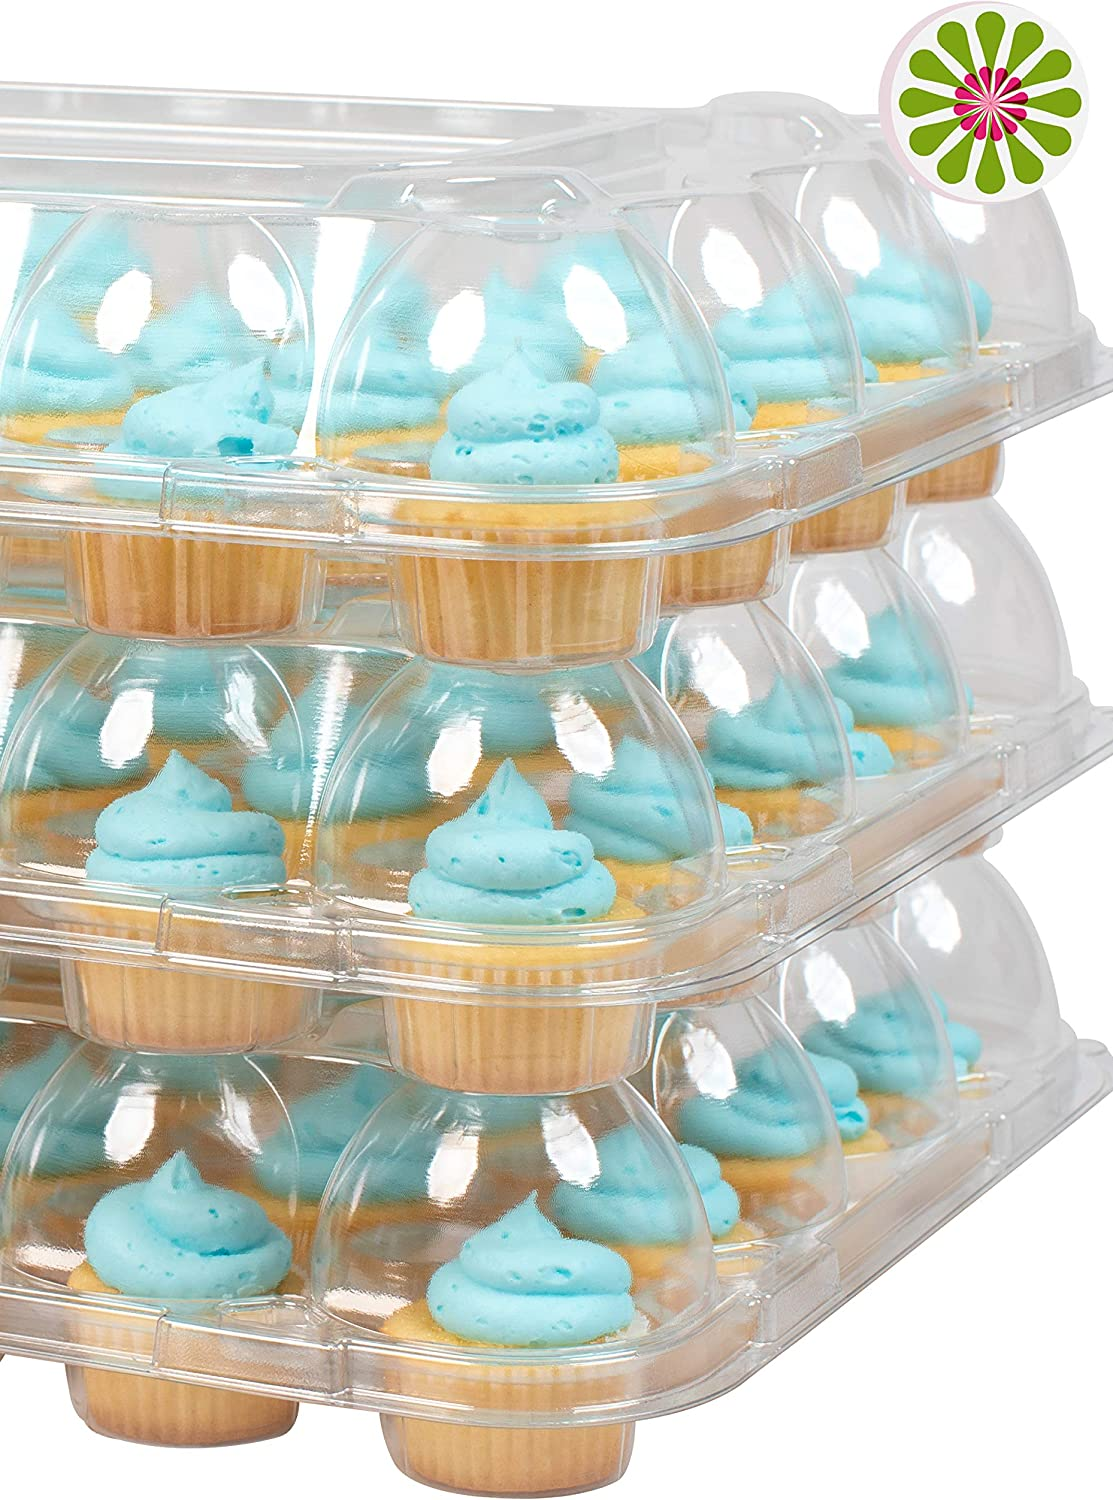 Stack'nGo MINI Cupcake Containers - (24 Pack X 12 Sets) - High Tall Dome, Clear Containers, Thick Plastic Disposable Storage Boxes, 2 Dozen Compartments Slots, Cupcakes Holder Box, Tray Carrier